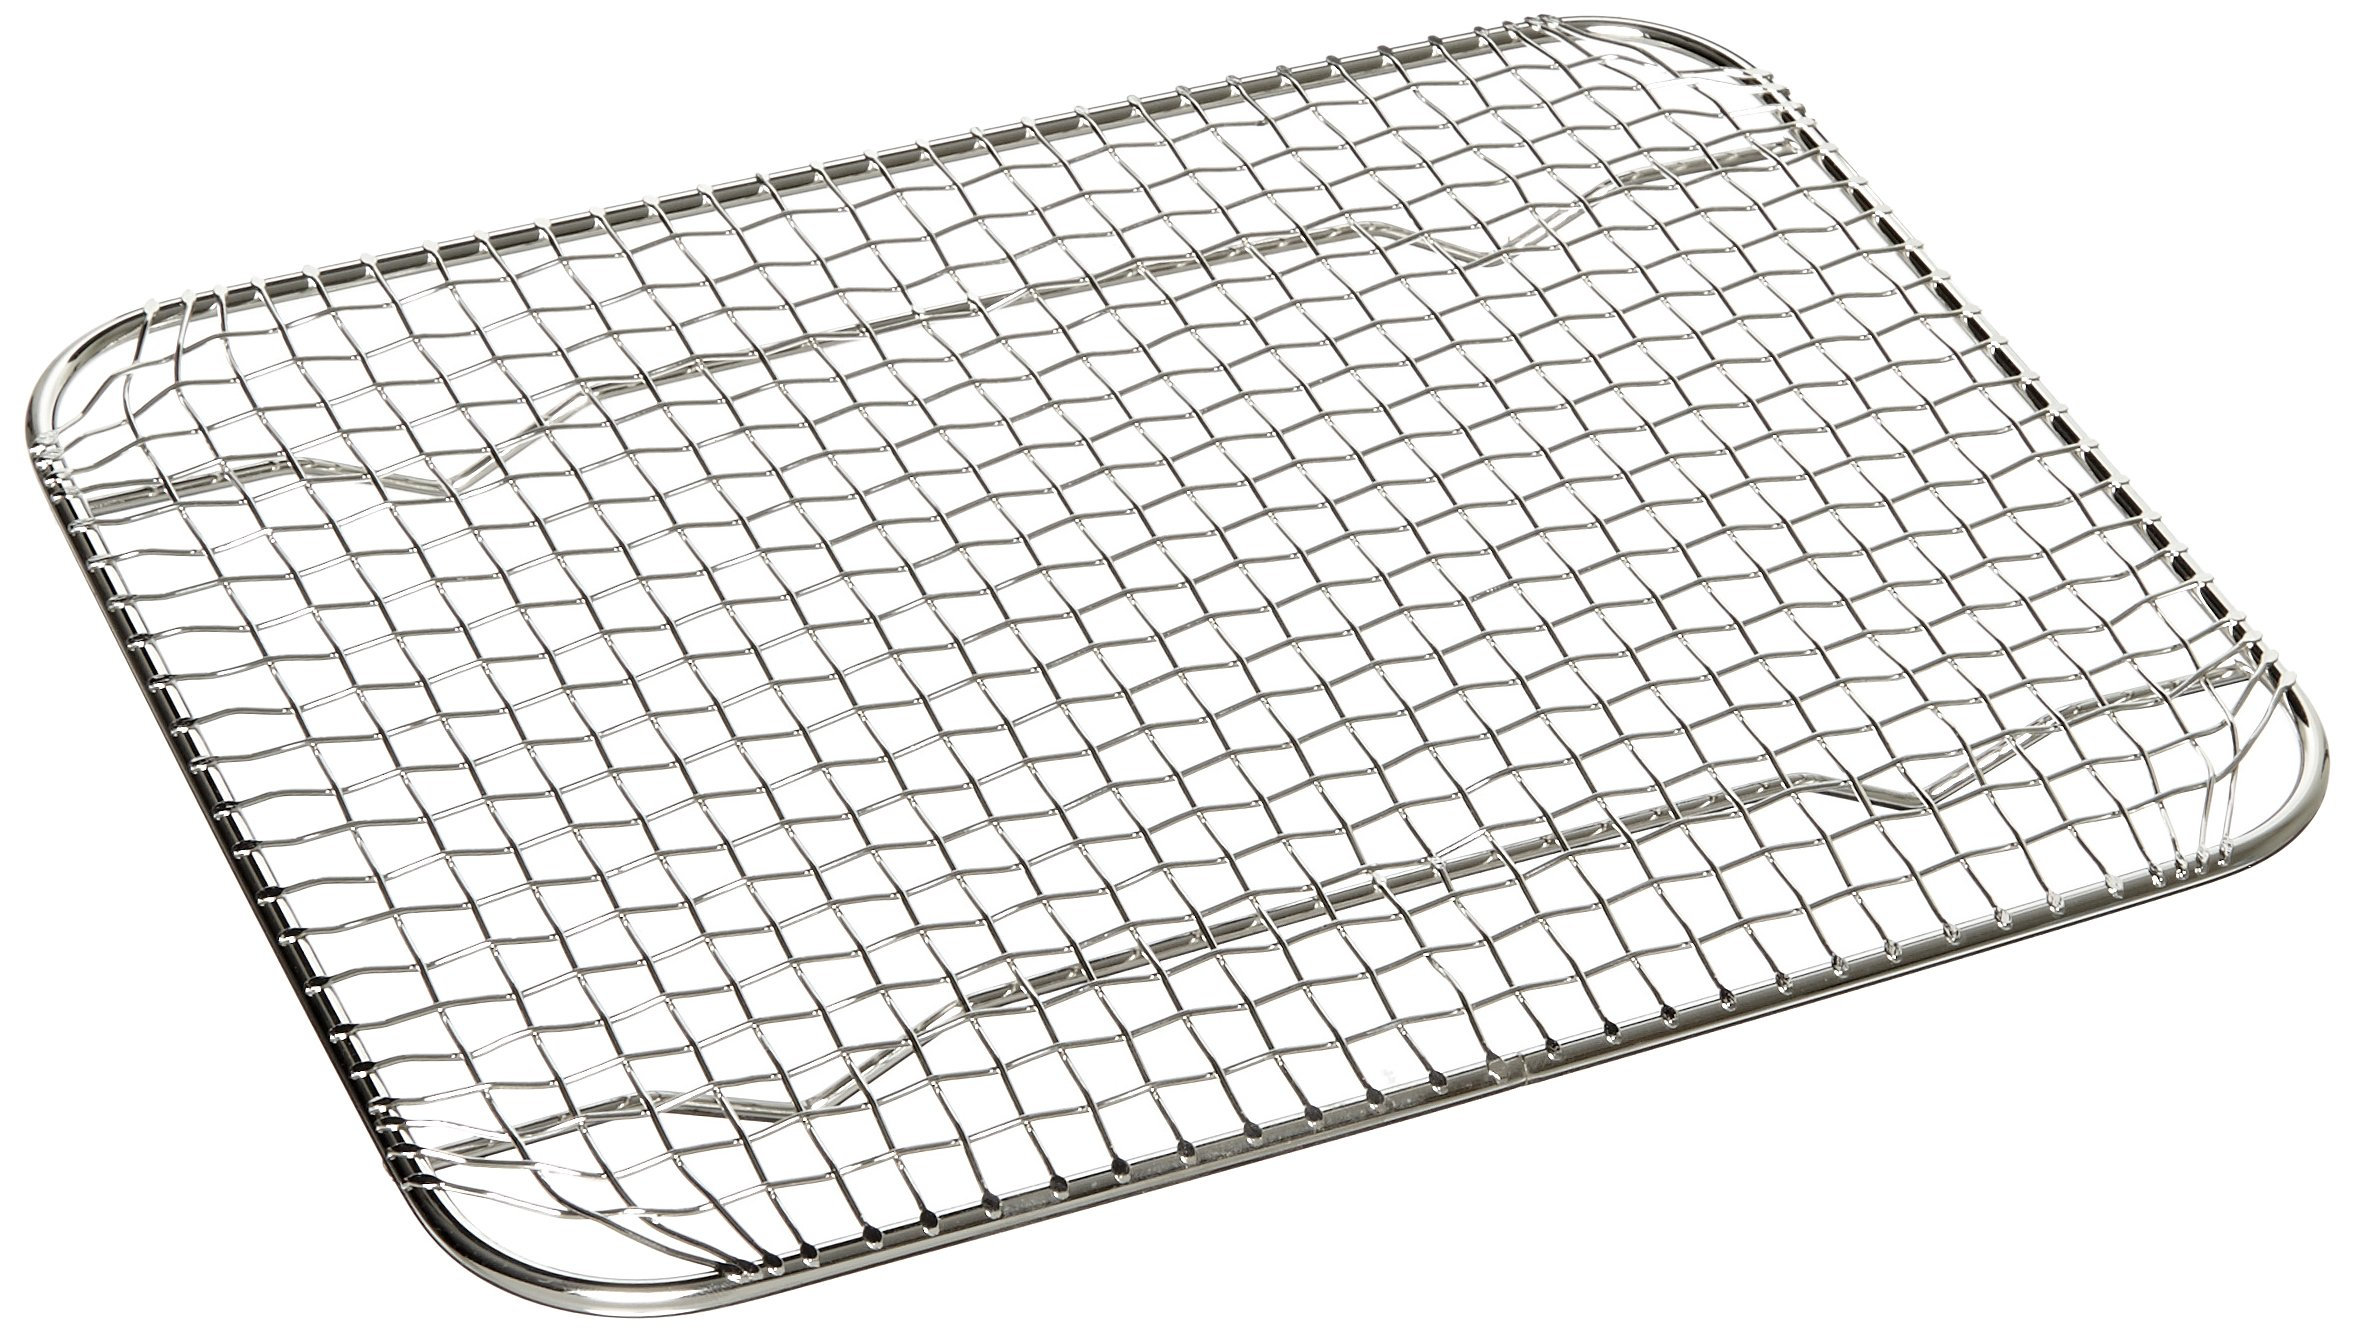 Carlisle 602203 DuraPan Stainless Steel 18-8 Drain Grate, 8.5'' Length x 10.5'' Width, For Half-Size Food Pan (Case of 6)